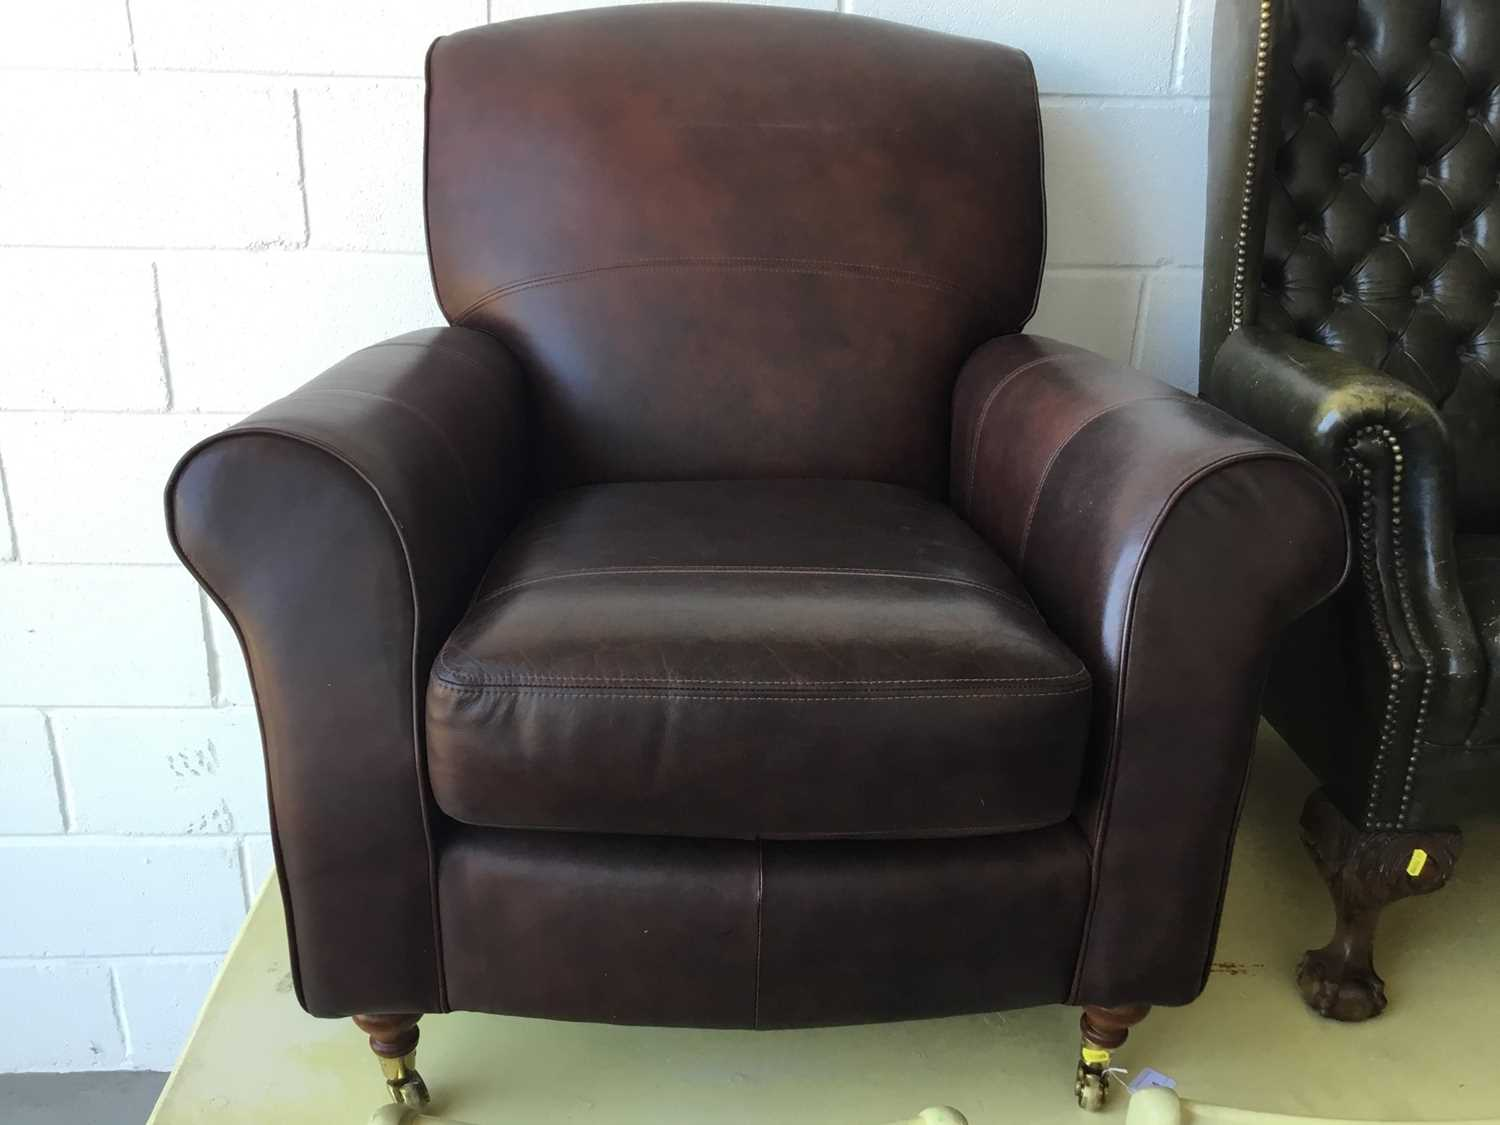 Lot 15-Good quality contemporary brown leather arm chair by Marks & Spencer, on turned feet with brass castors, 93cm in overall height